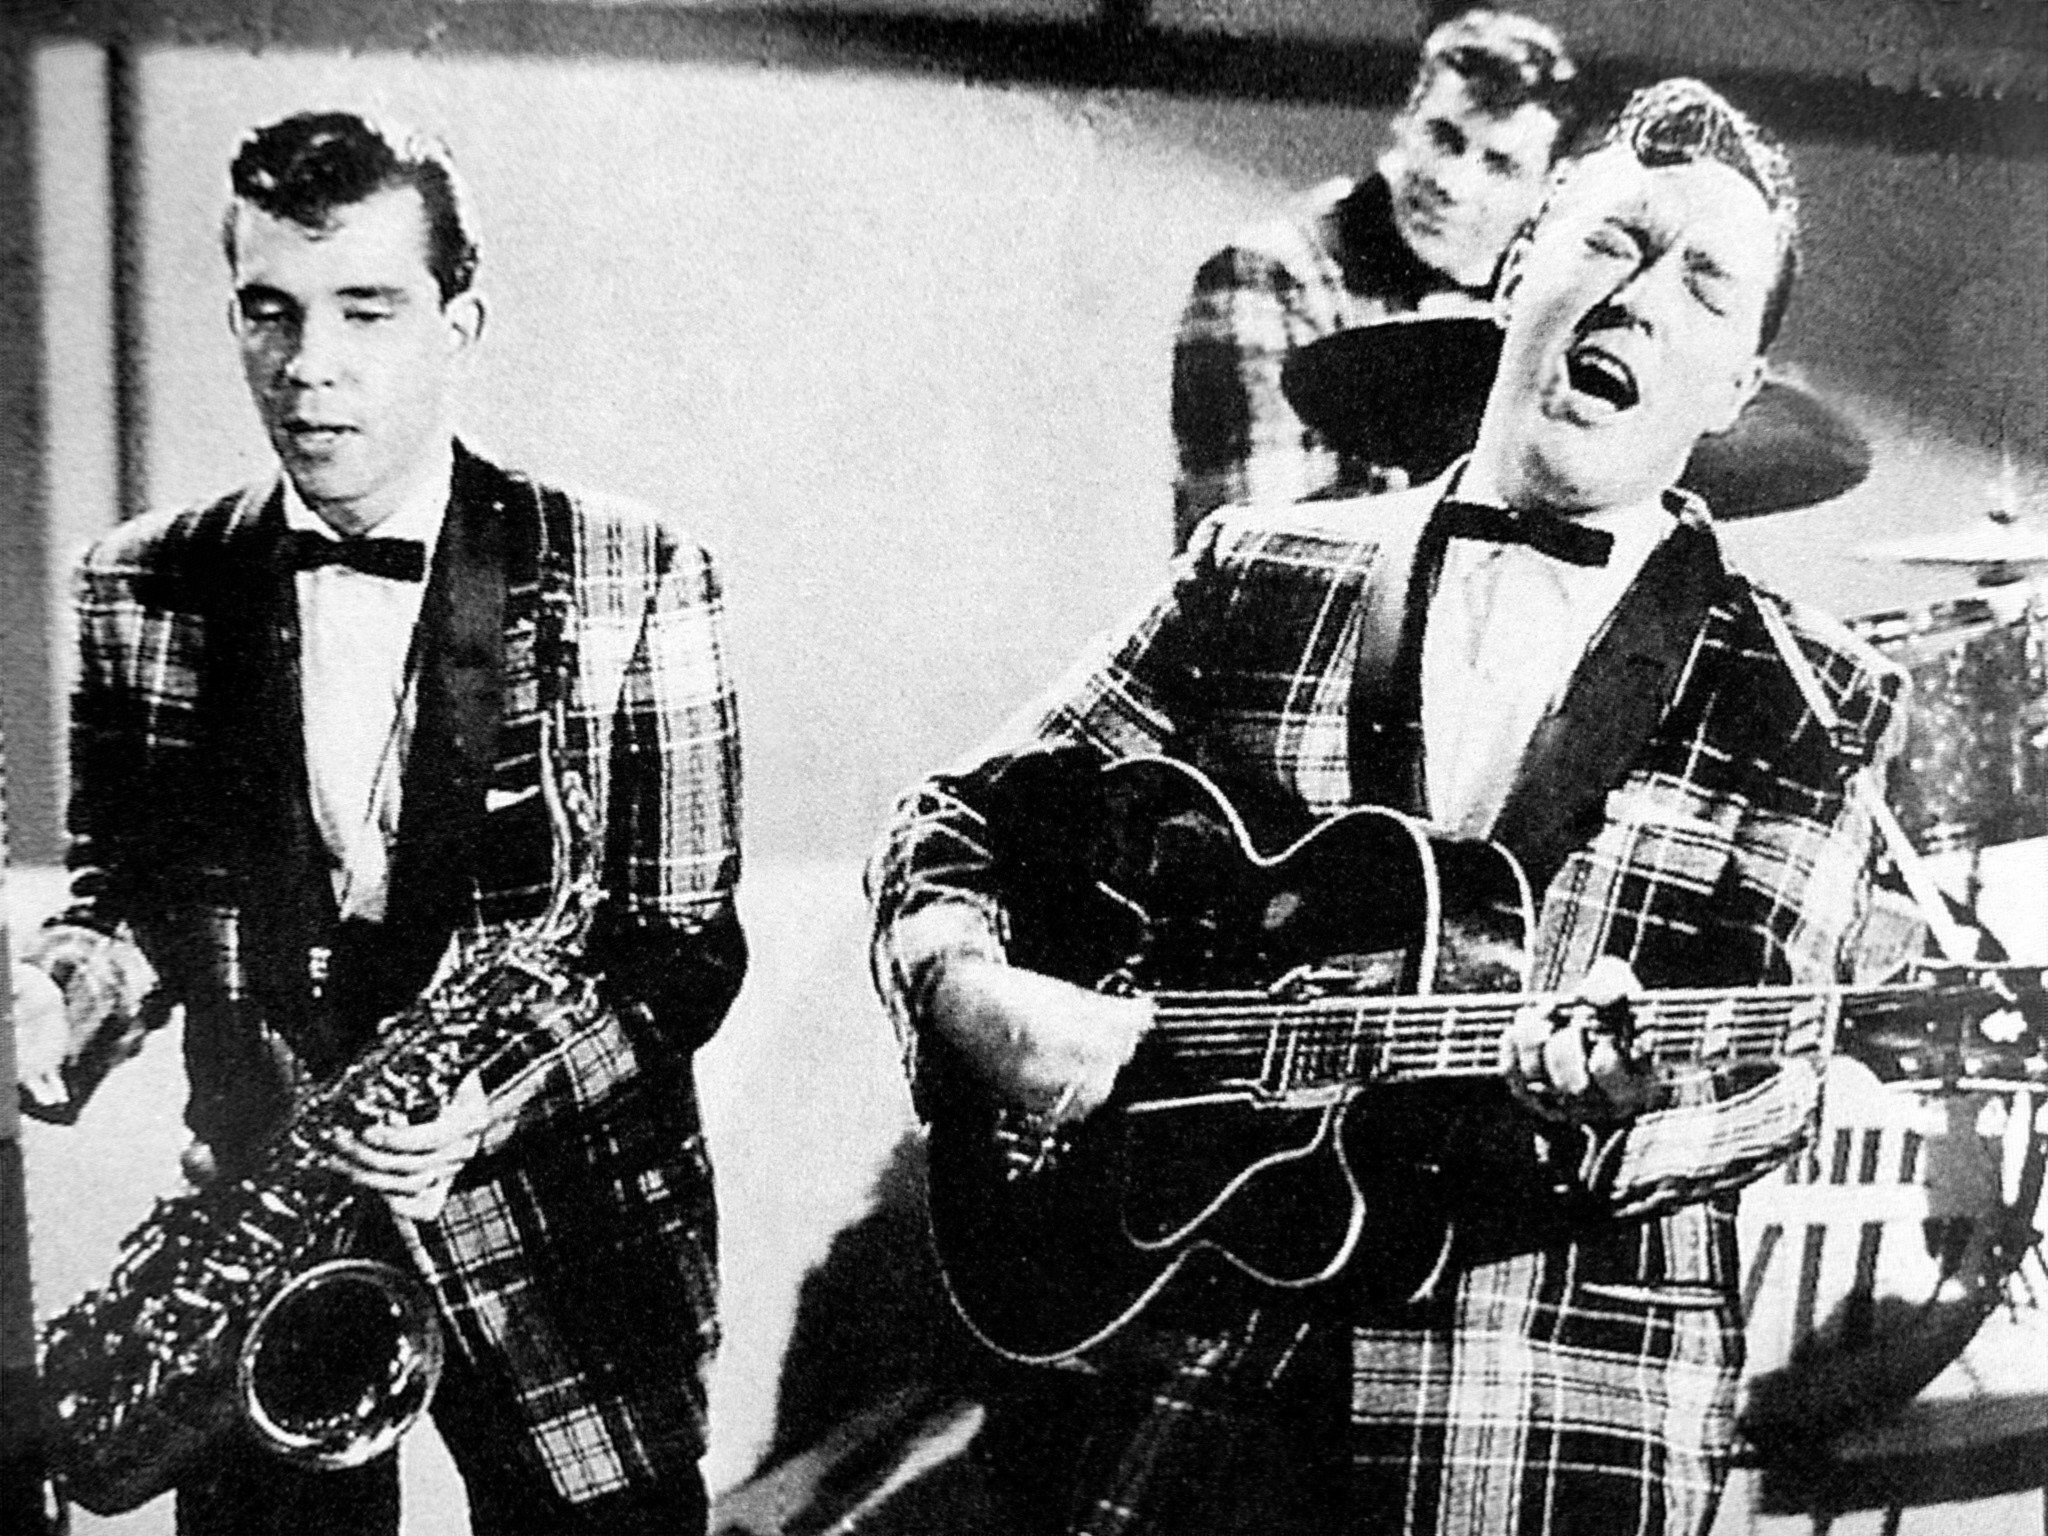 Left to right: Joey D'Ambrosio, Dick Richards in the back row, Bill Haley